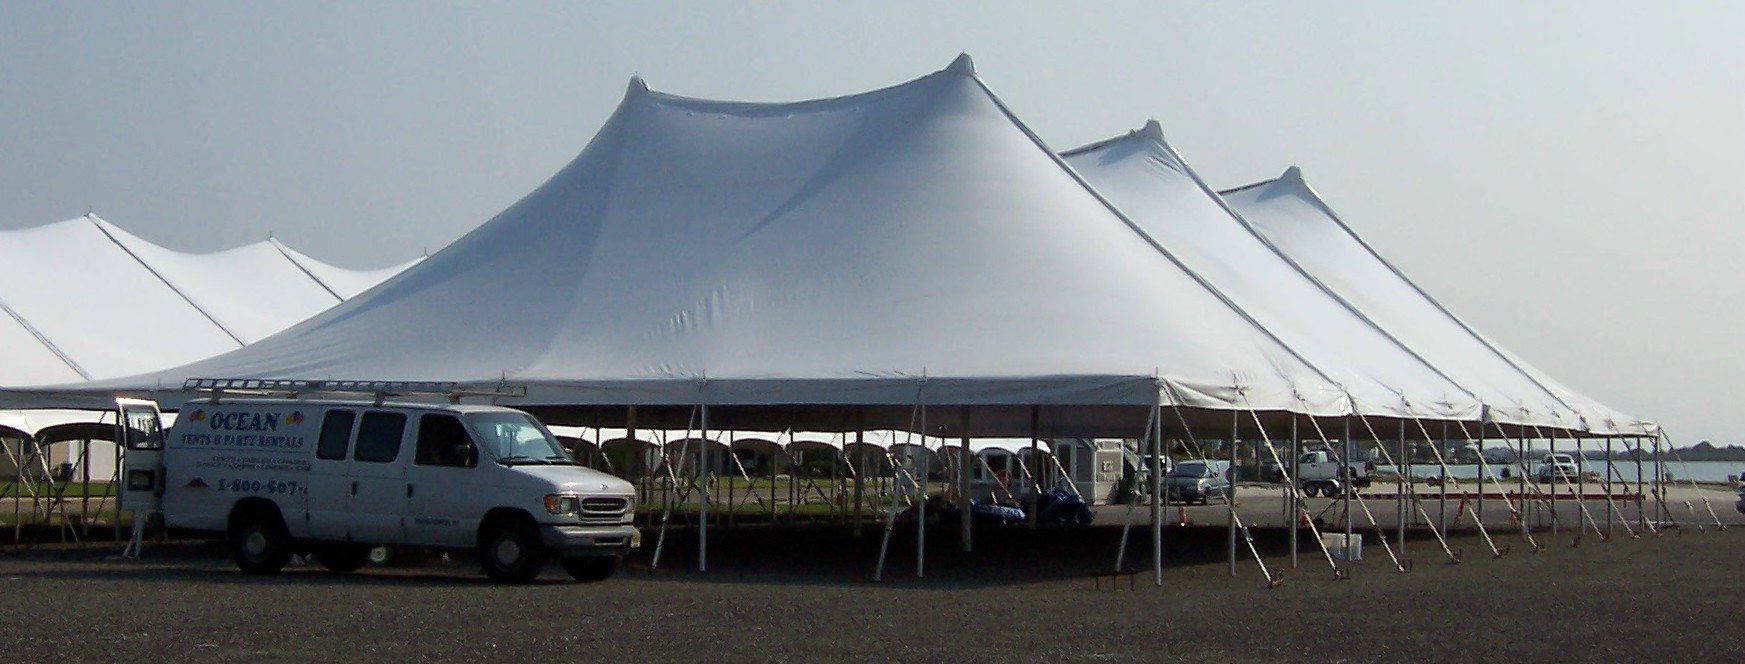 Categories 60u0027 Wide Pole Tent Pole Tents Tents. : ocean tent - memphite.com